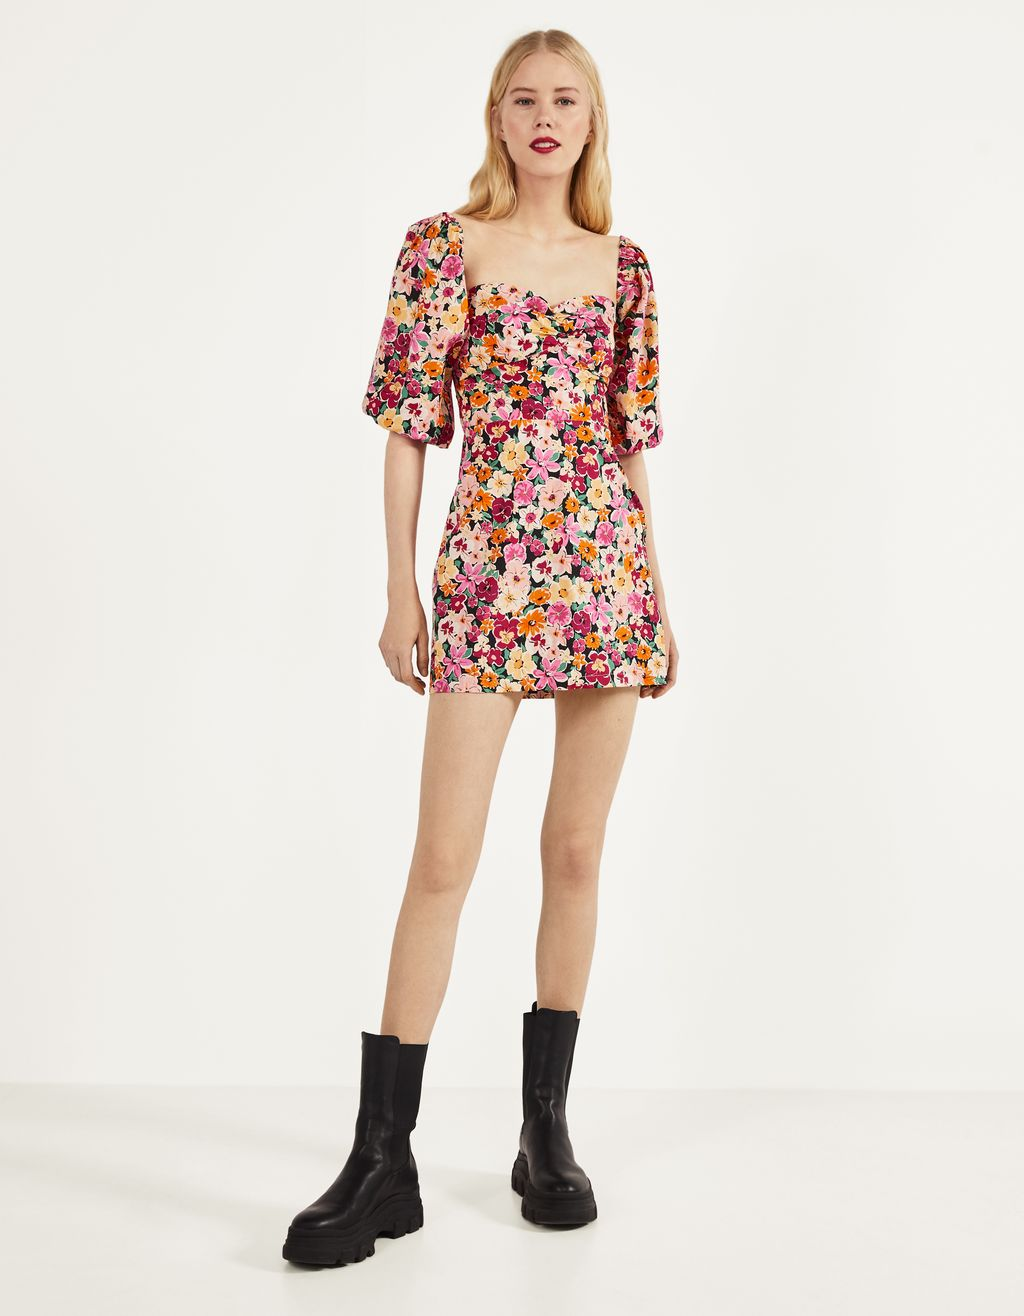 Floral dress with a Bardot neckline